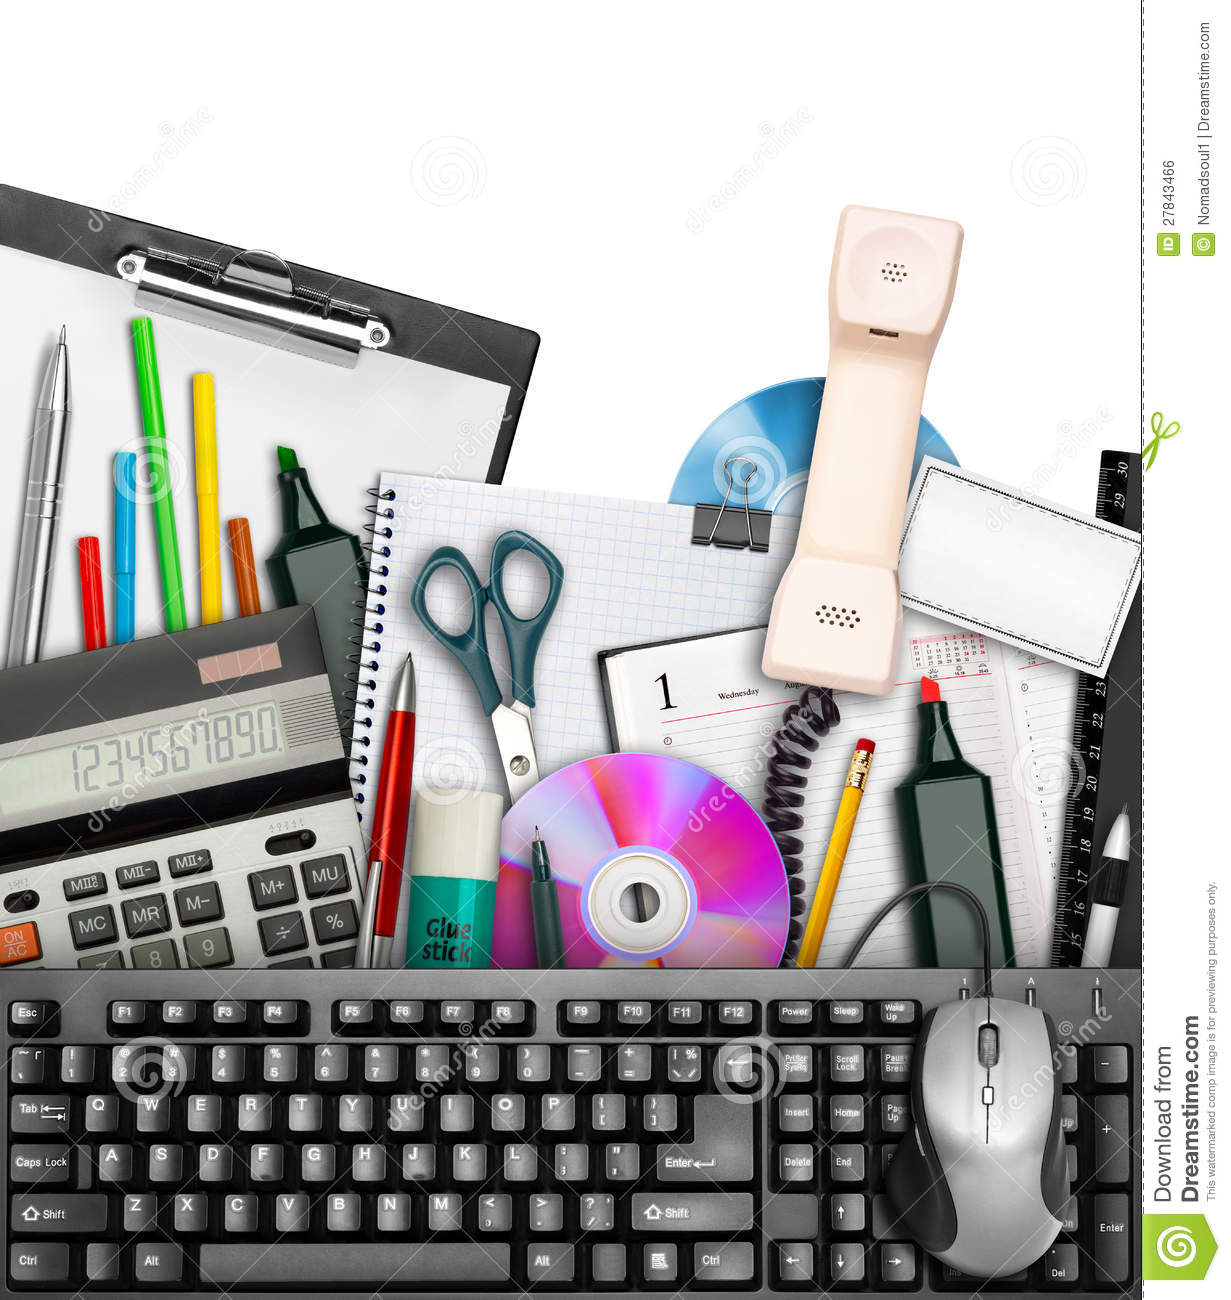 Office Stationery Royalty Free Stock Image - Image: 27843466